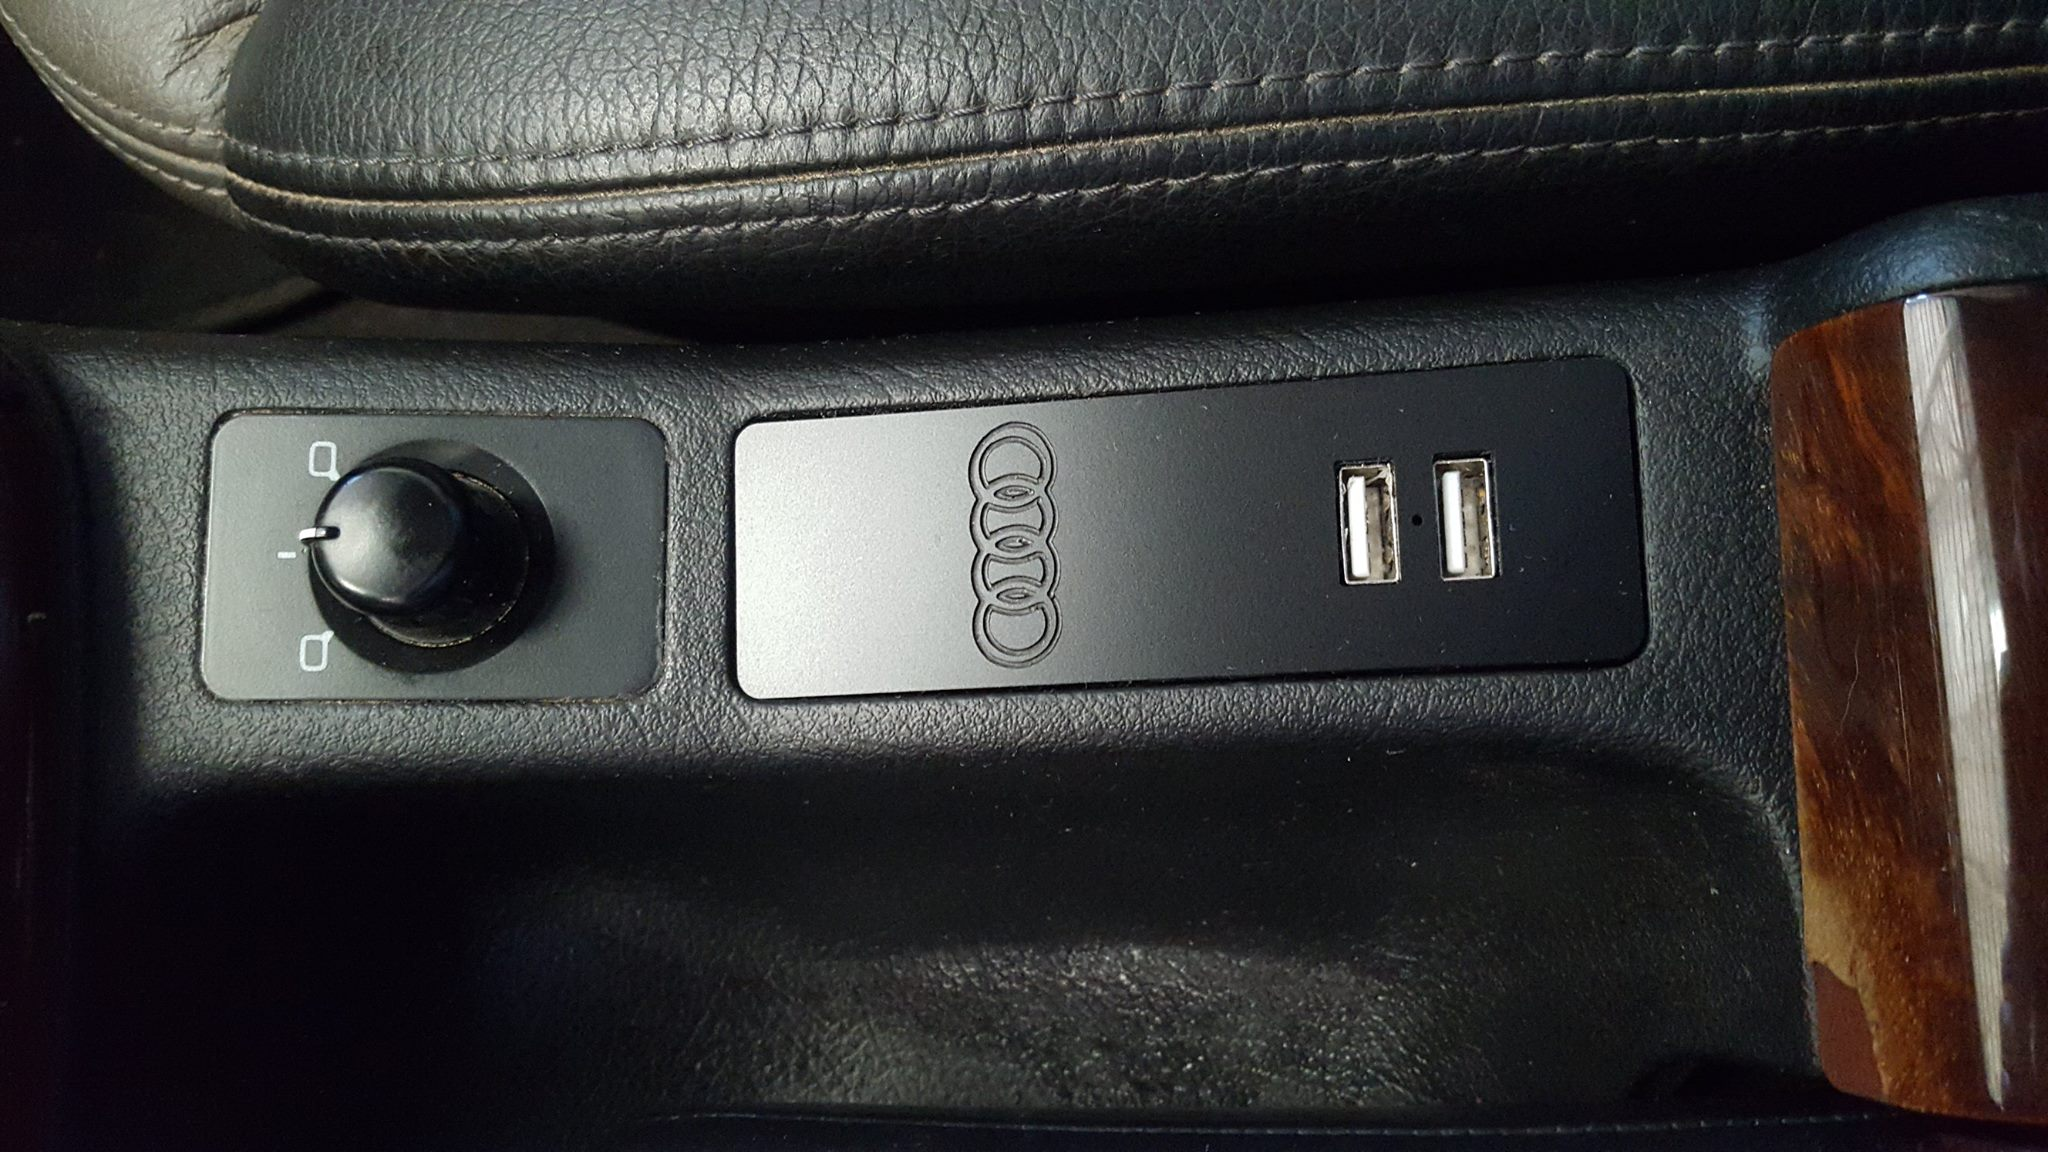 98-04 A6 & 99-05 Allroad USB Power Panel version2 – Cup